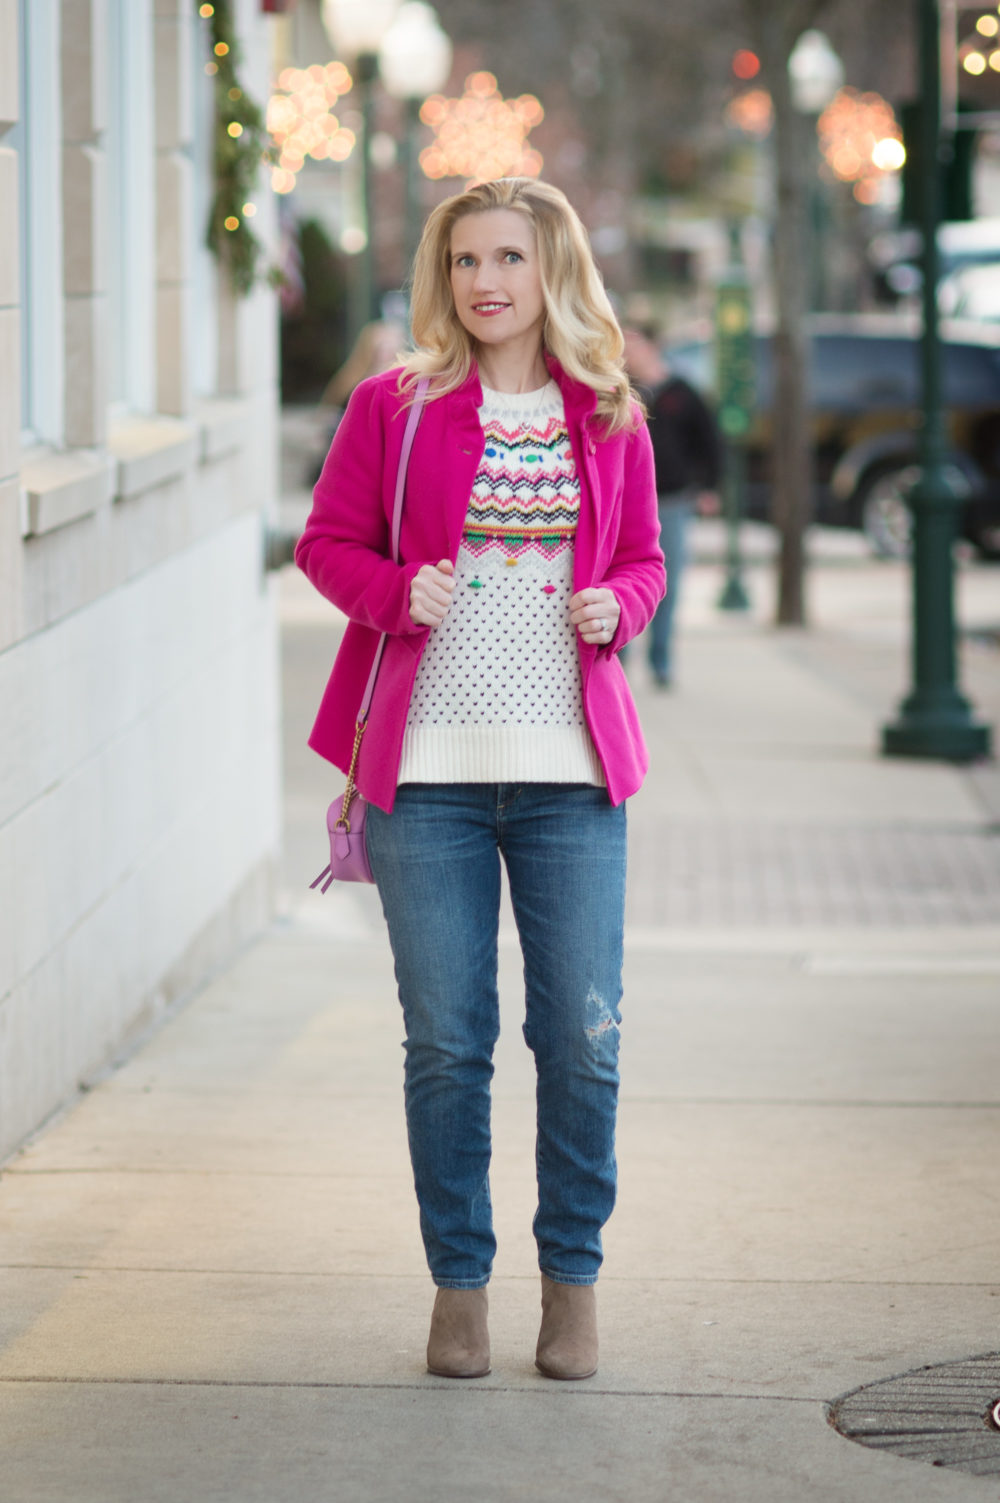 Petite Fashion and Style Blog | Talbots Carnival Fair Isle Sweater | Talbots Ruffle Neck Double Face Jacket | Talbots Pom Pom Hat | Vince Camuto Franell Bootie